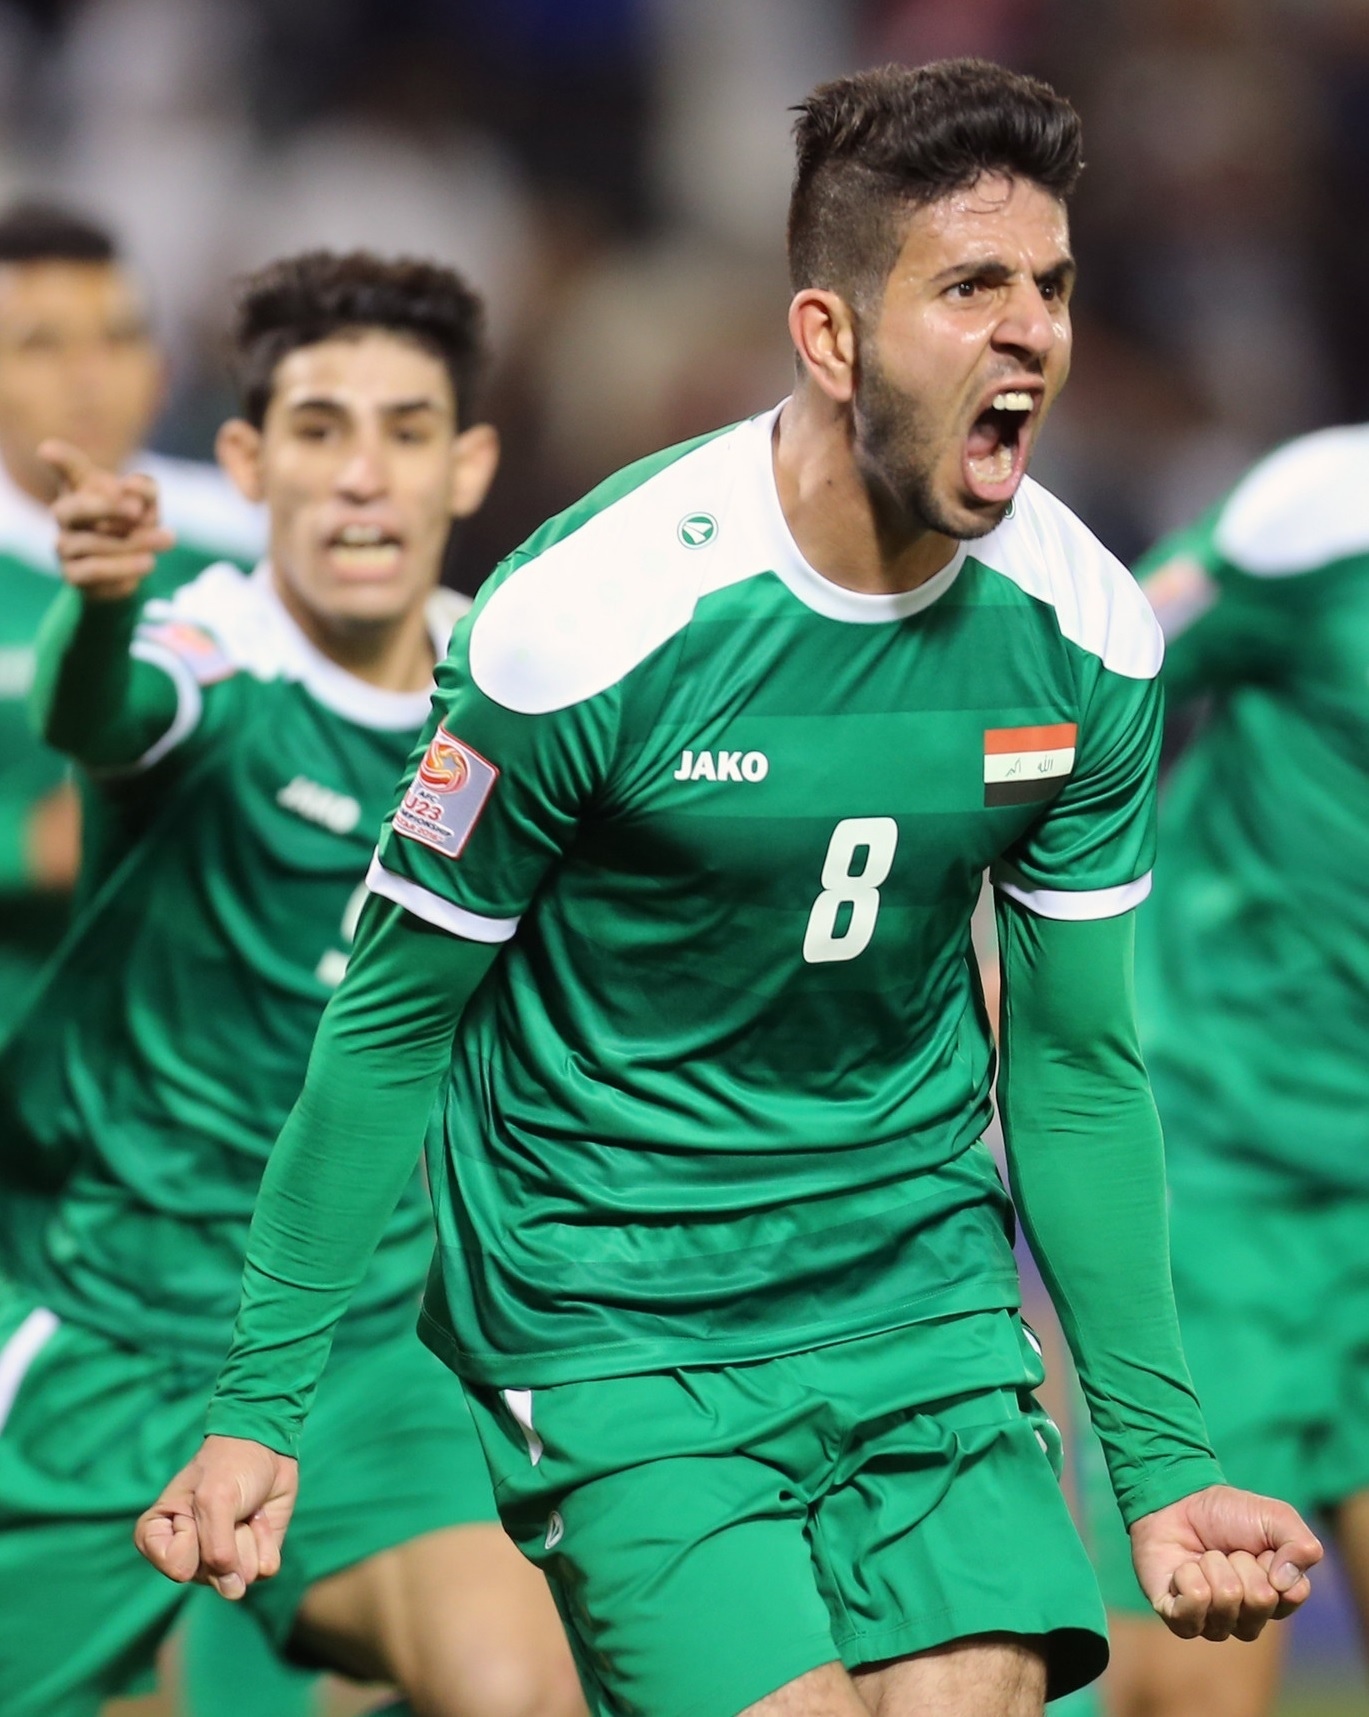 Iraq-2016-JAKO-olympic-home-kit.jpg